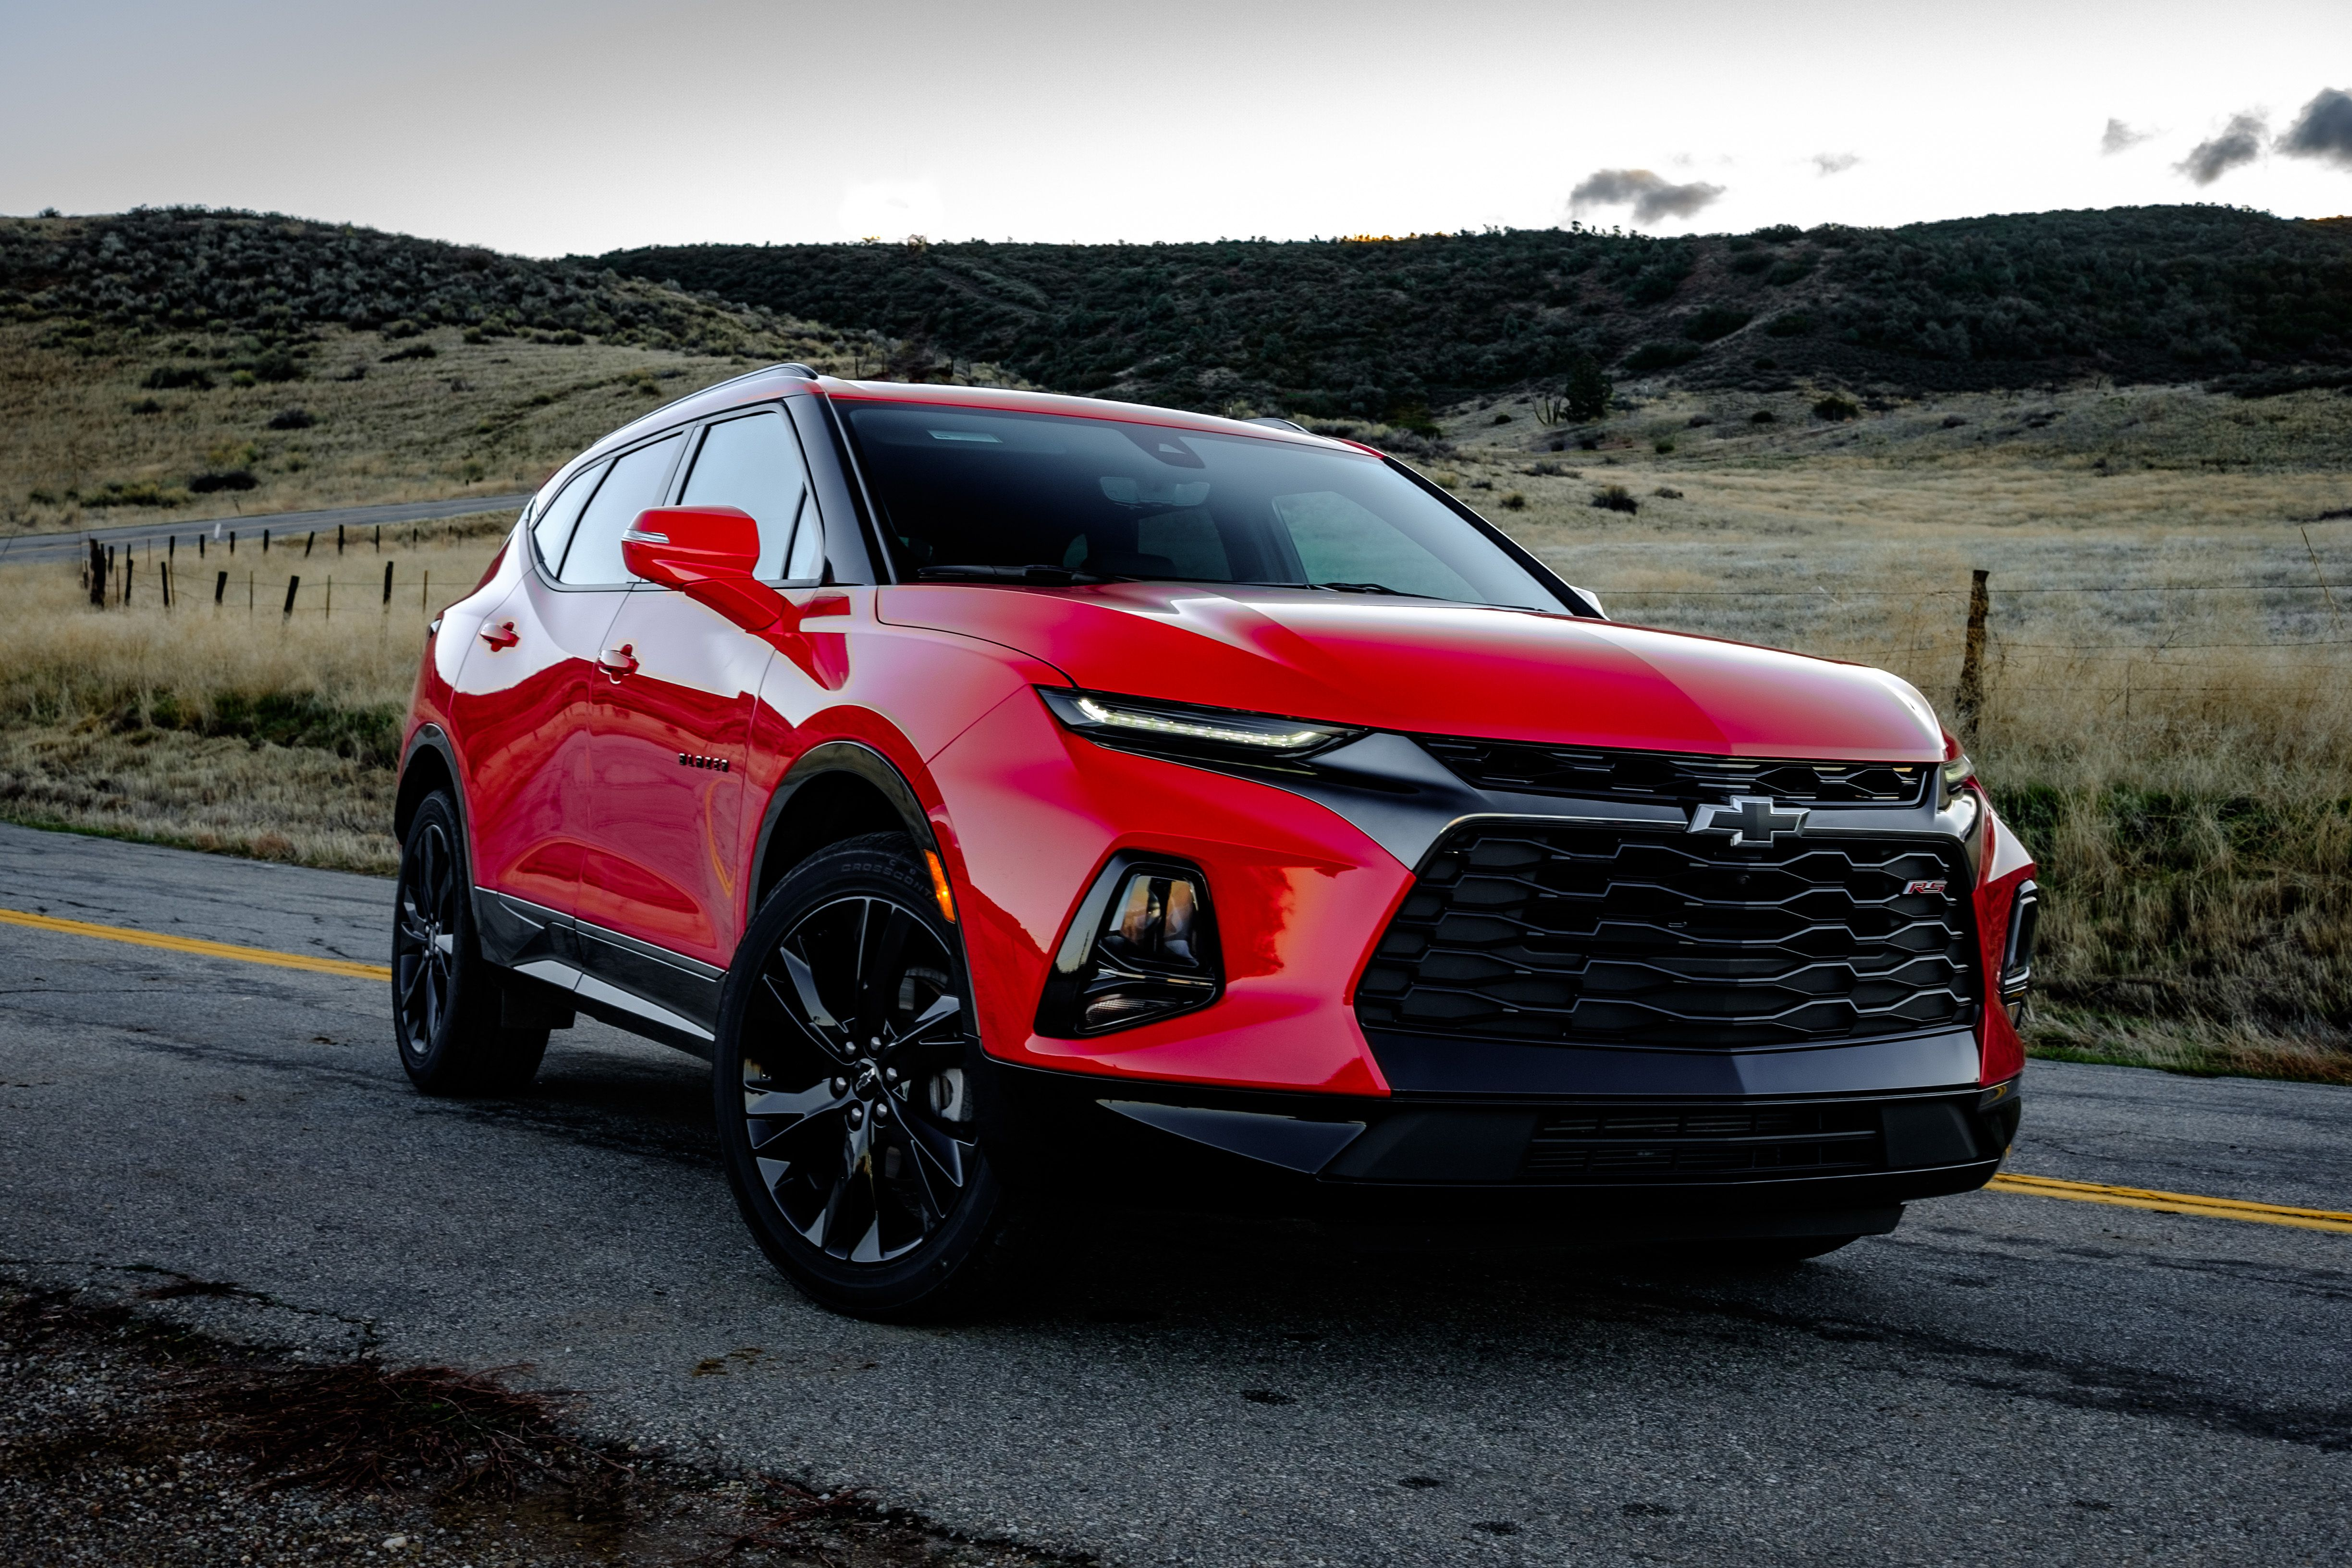 2019 Chevrolet Blazer Reviews | Chevrolet Blazer Price ...